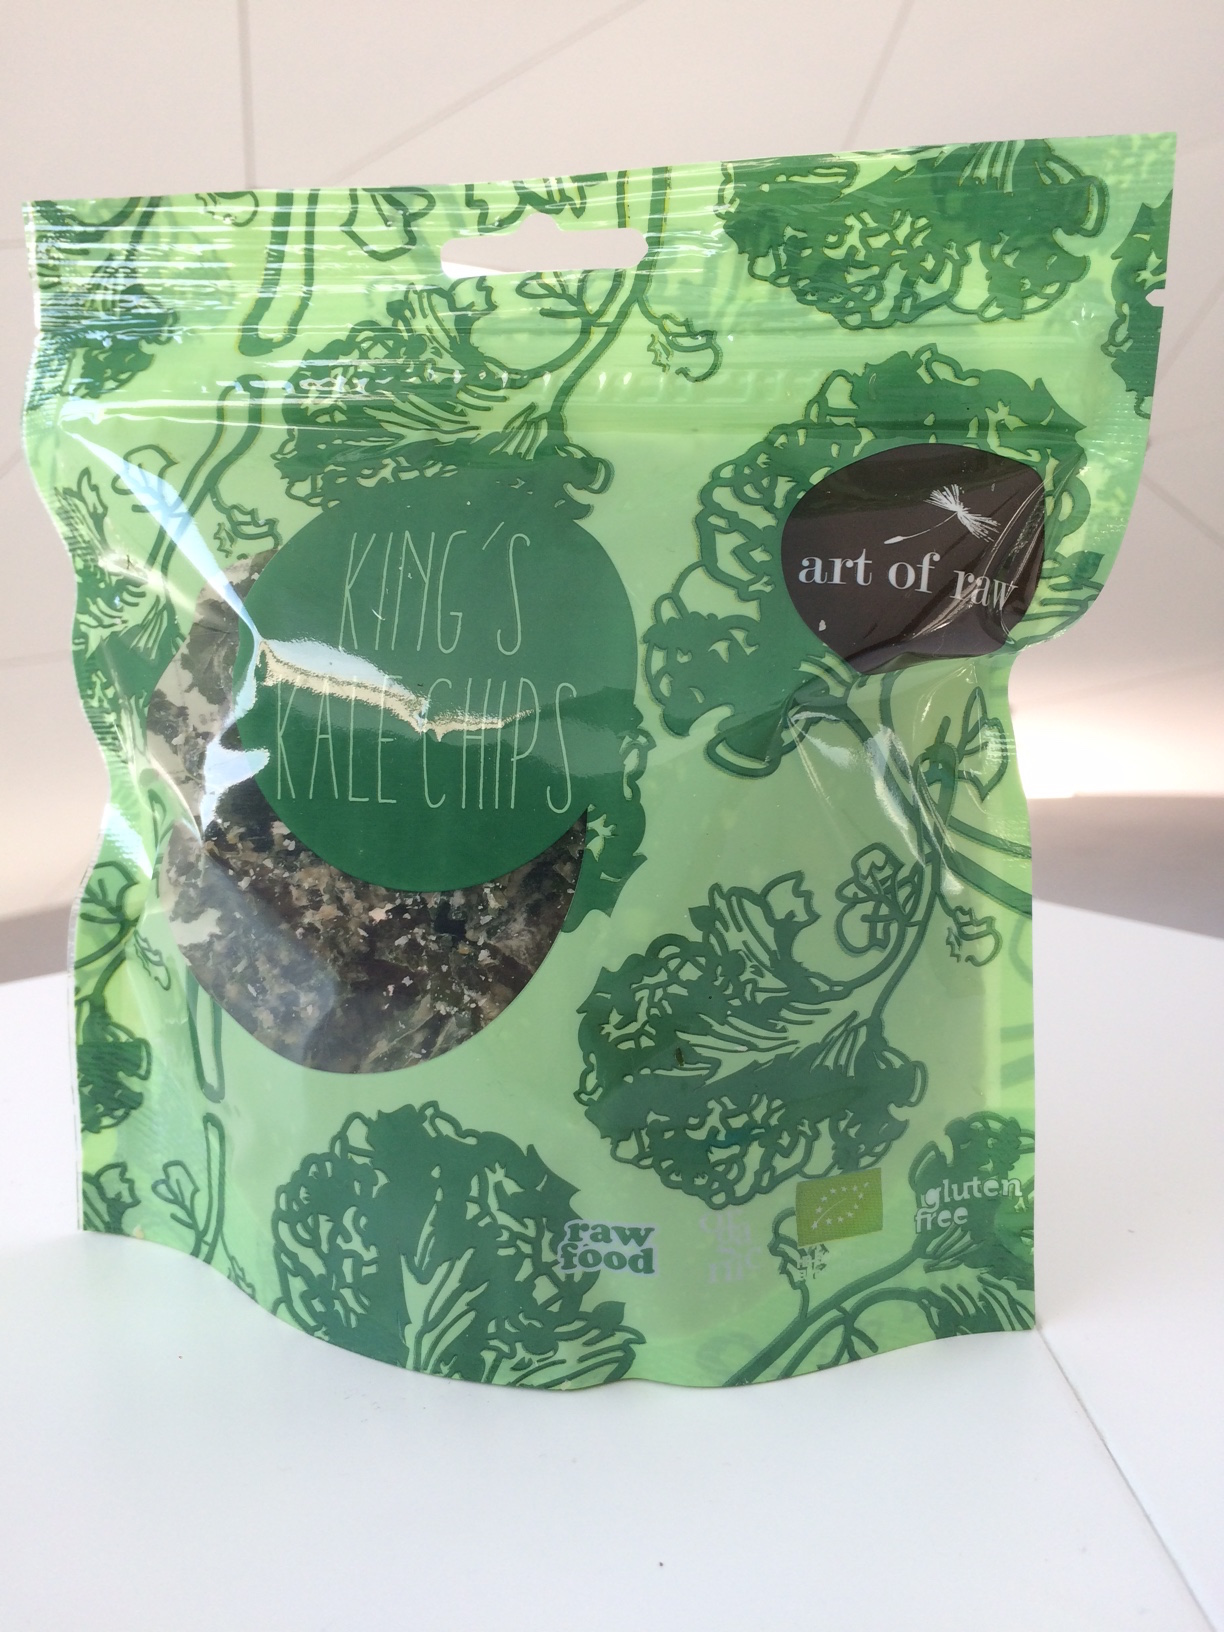 Kings-Kale-Chips-35g